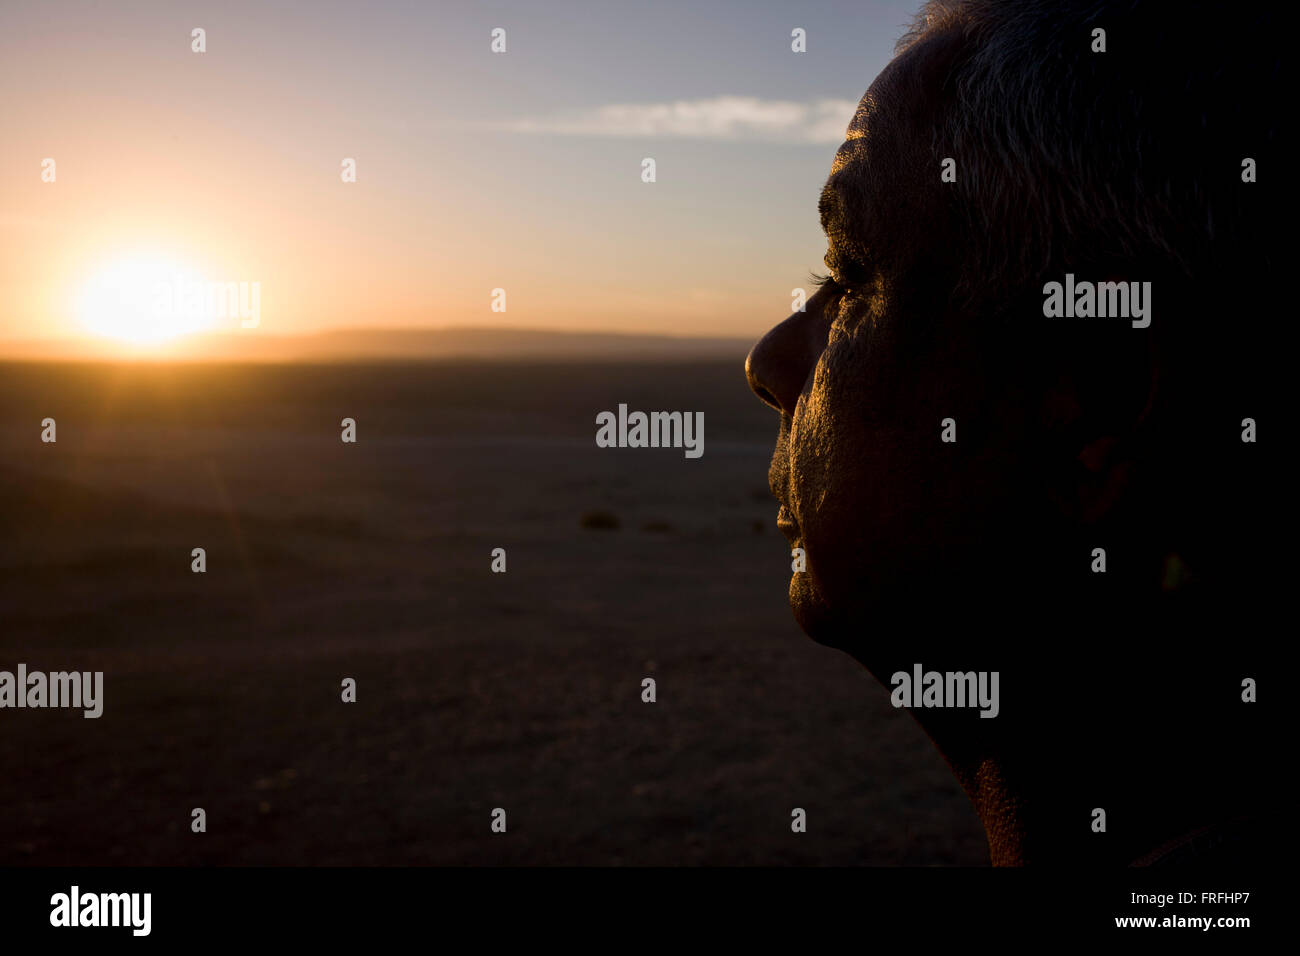 A local Egyptian businessman looks thoughtfully into a setting sun while on sand dunes of a desert enviroment, near - Stock Image